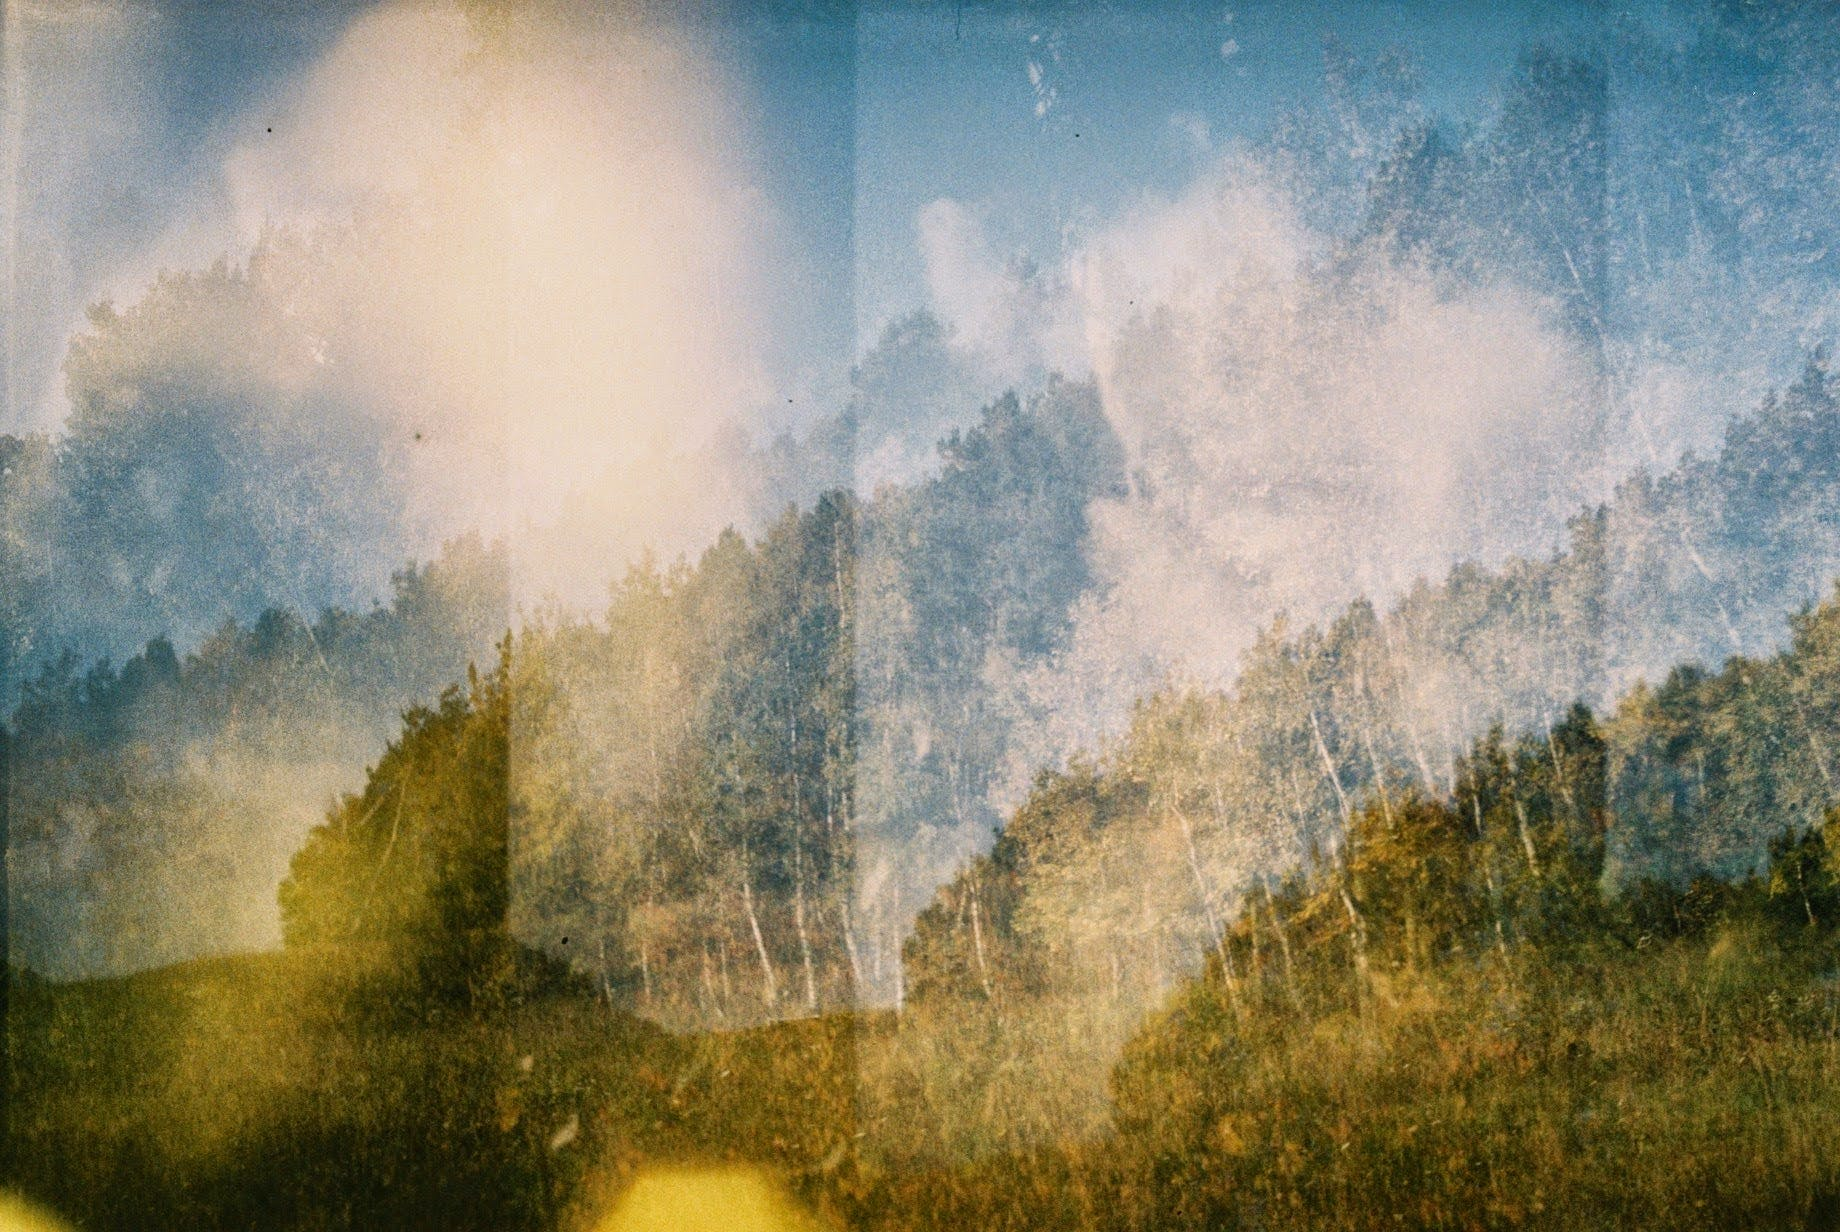 analog camera, double exposure, field